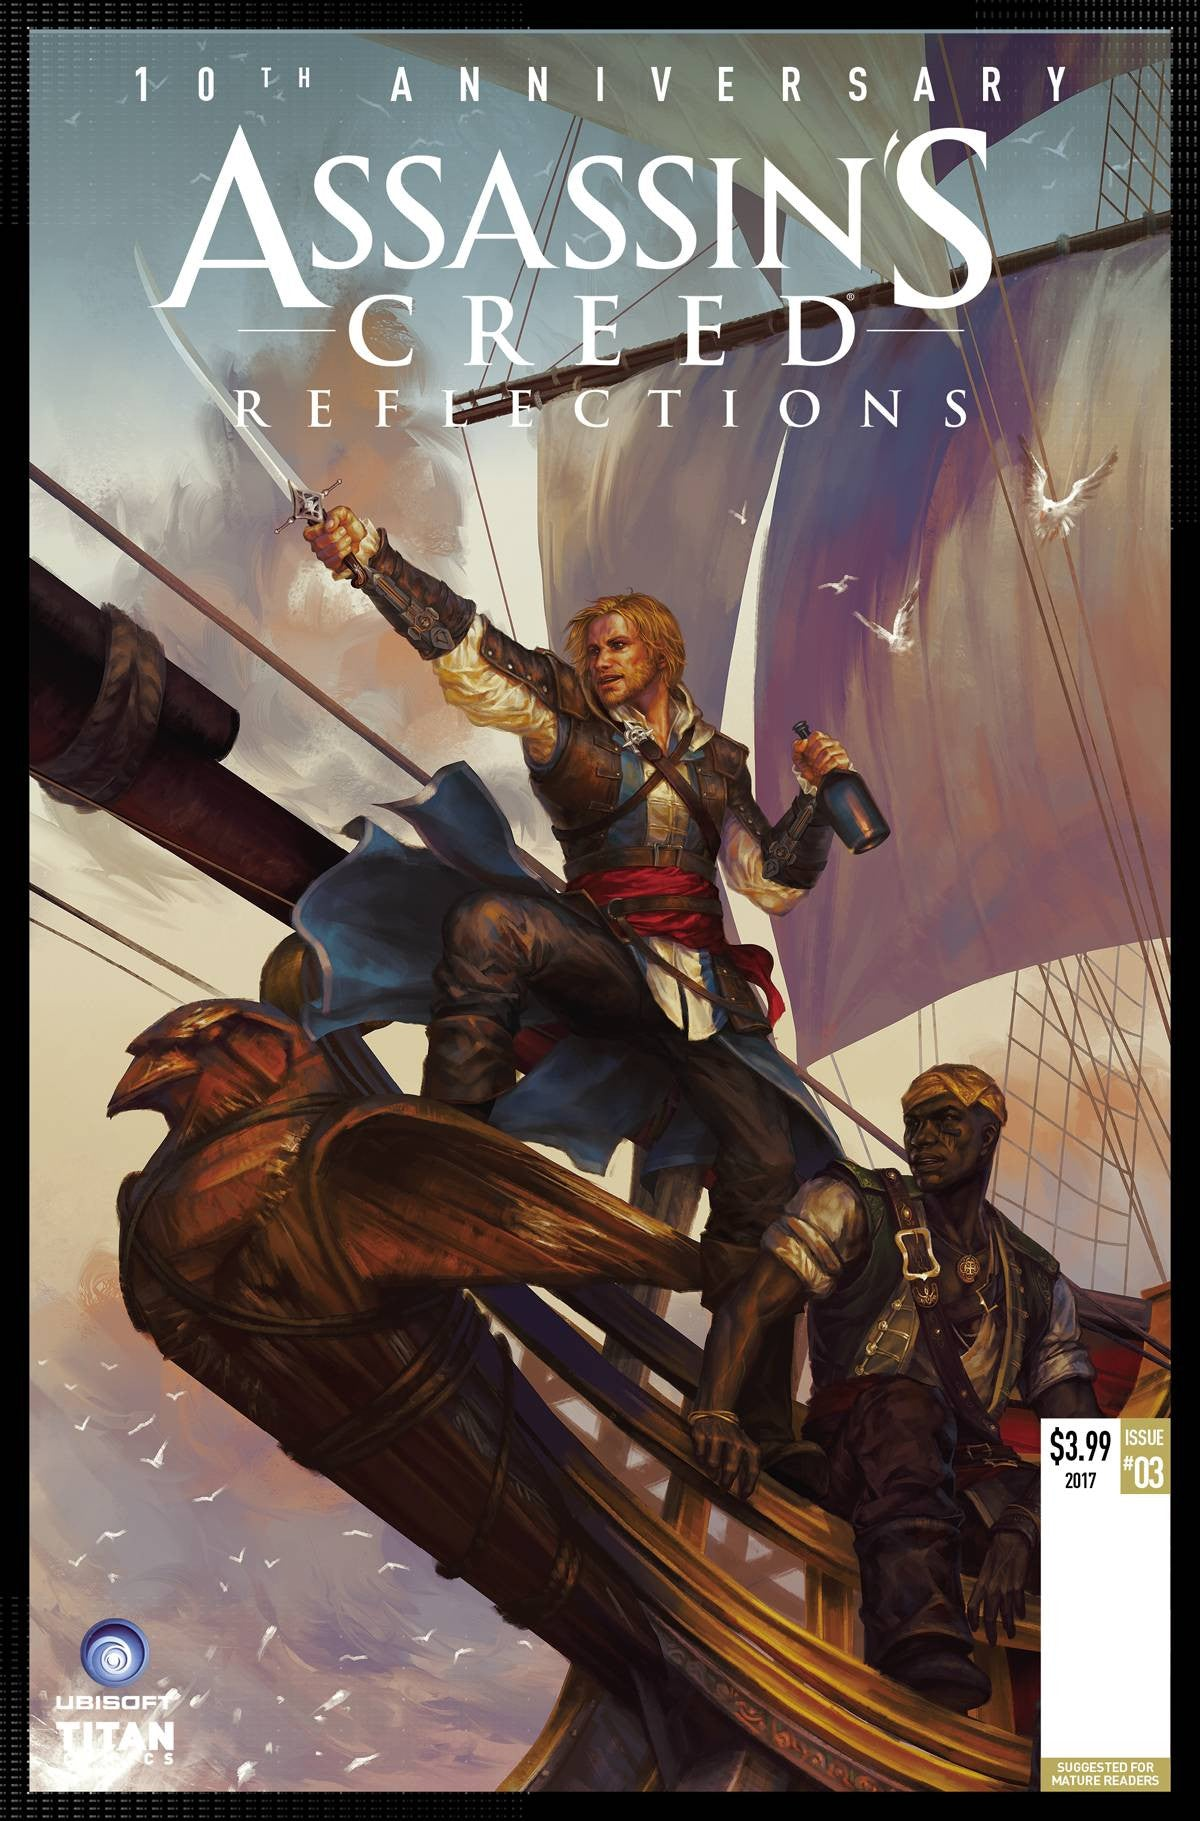 ASSASSINS CREED REFLECTIONS #3 (OF 4) CVR A SUNSETAGAIN